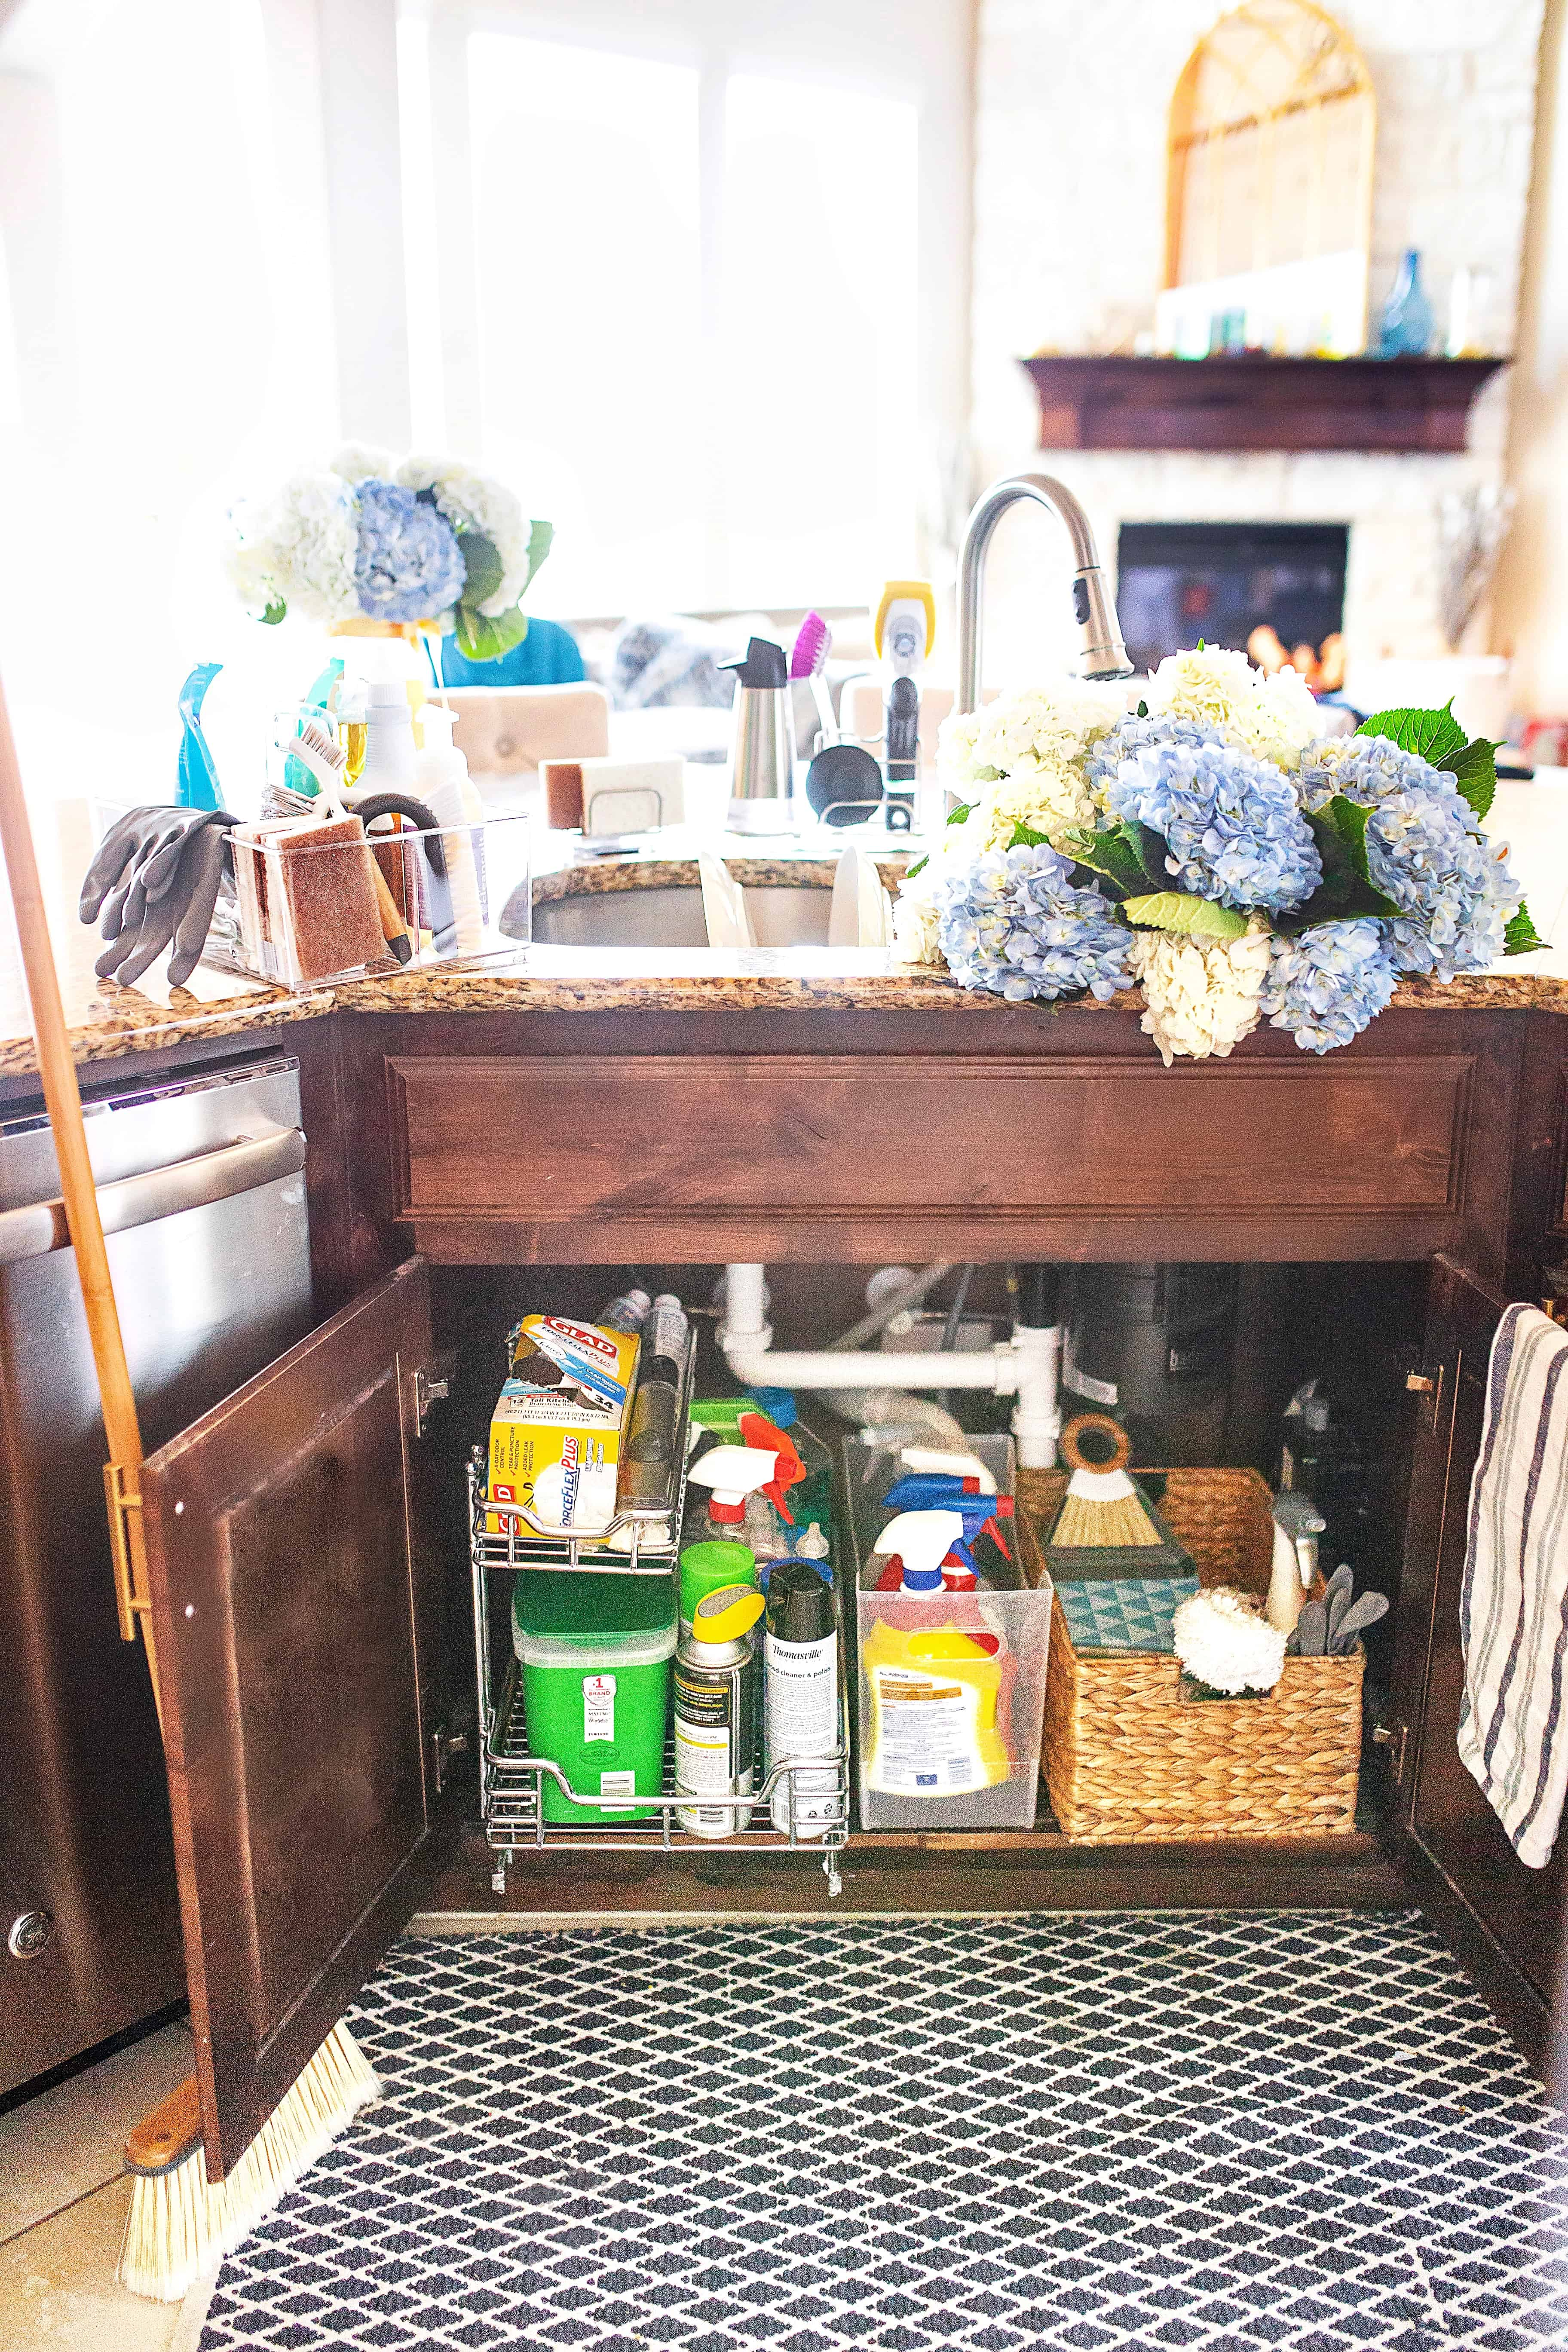 Top Home Organization Projects of 2019 by popular Dallas life and style blog, Glamorous Versatility: image of an organized under the sink cupboard.